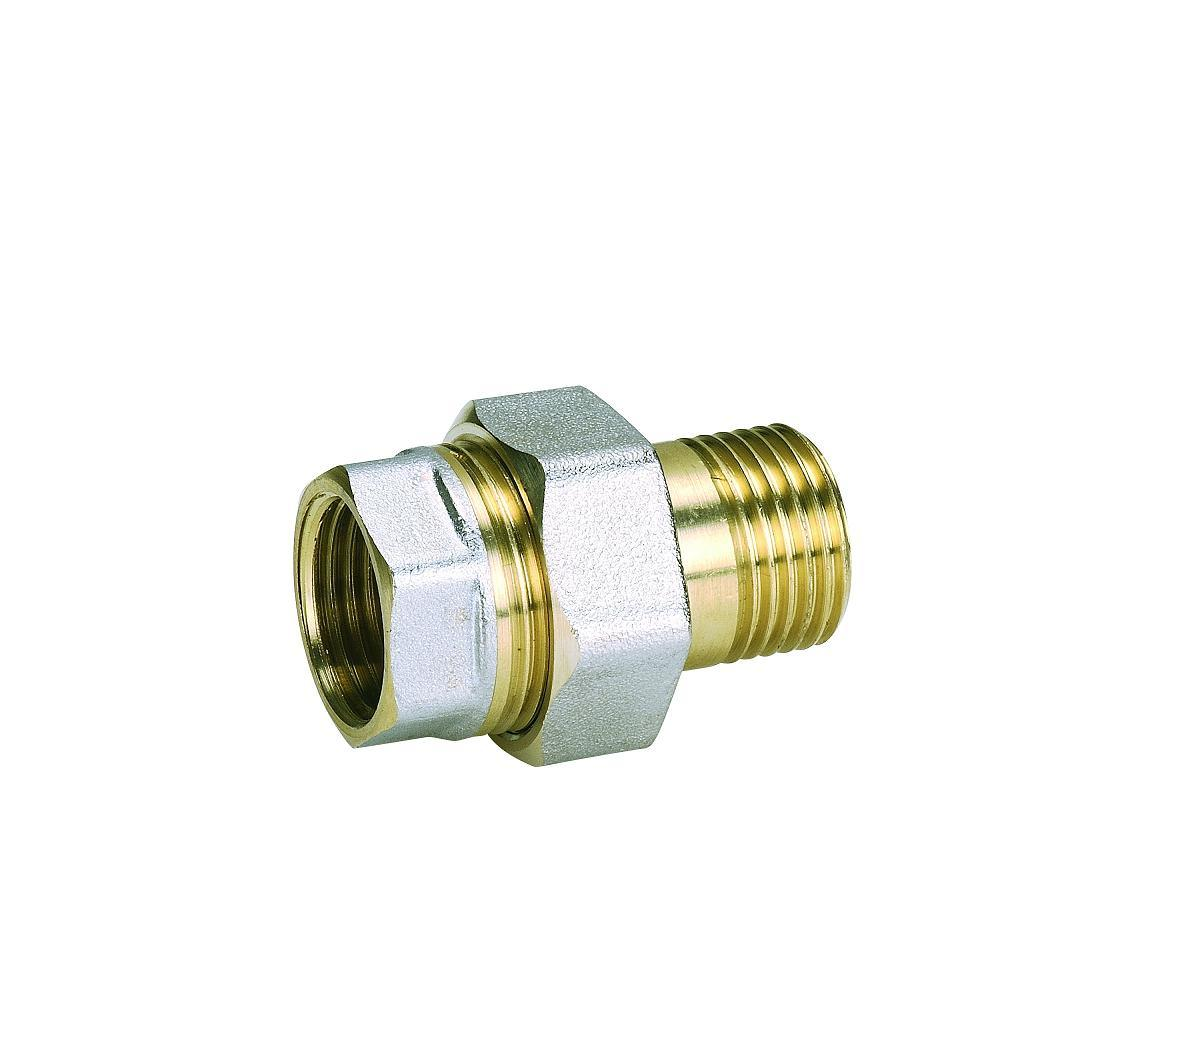 Straight Union with Extension M/F (Hz8044) of Brass Fittings for Dhpe Pipe, Pex-Al-Pex Pipe and Plastic Pipe